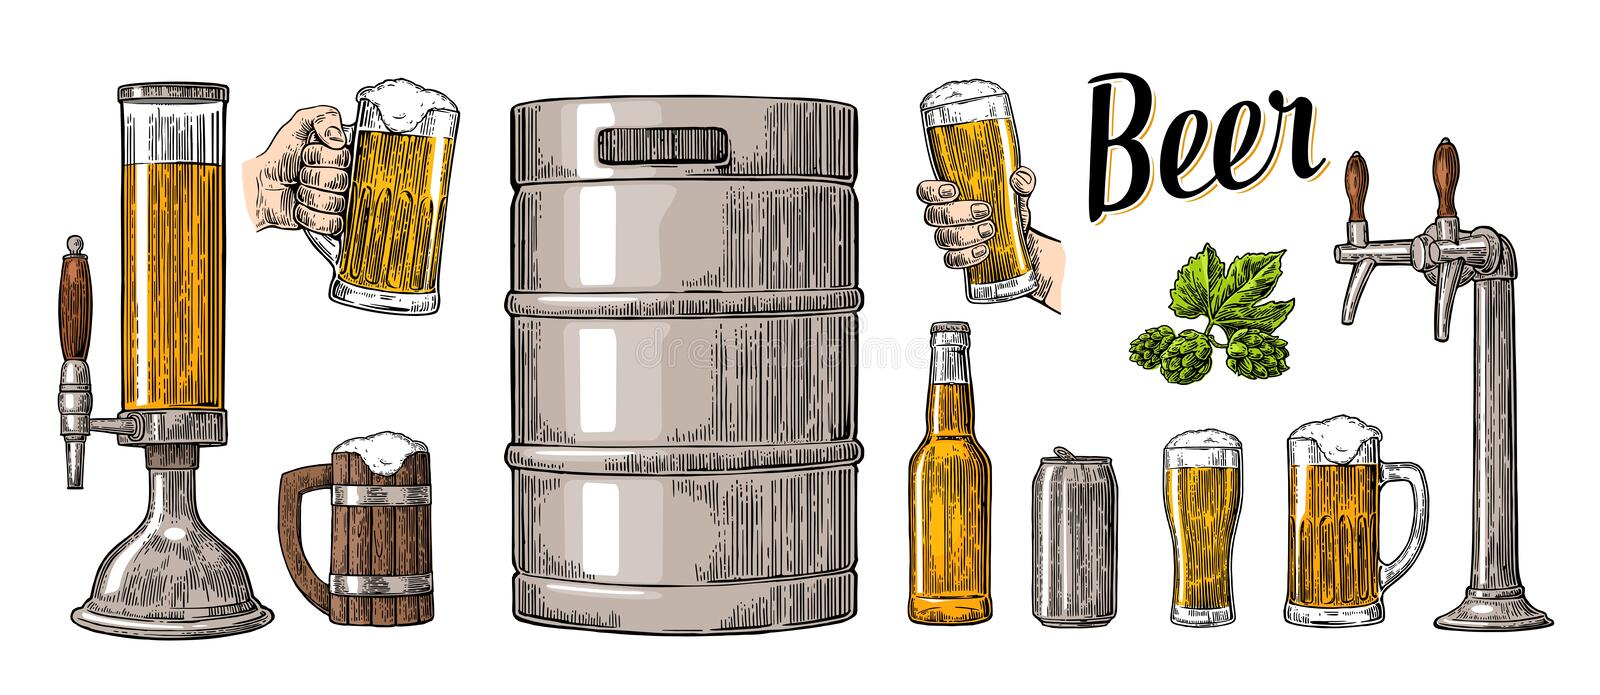 Beer set with two hands holding glasses mug and tap, can, keg, bottle. royalty free illustration